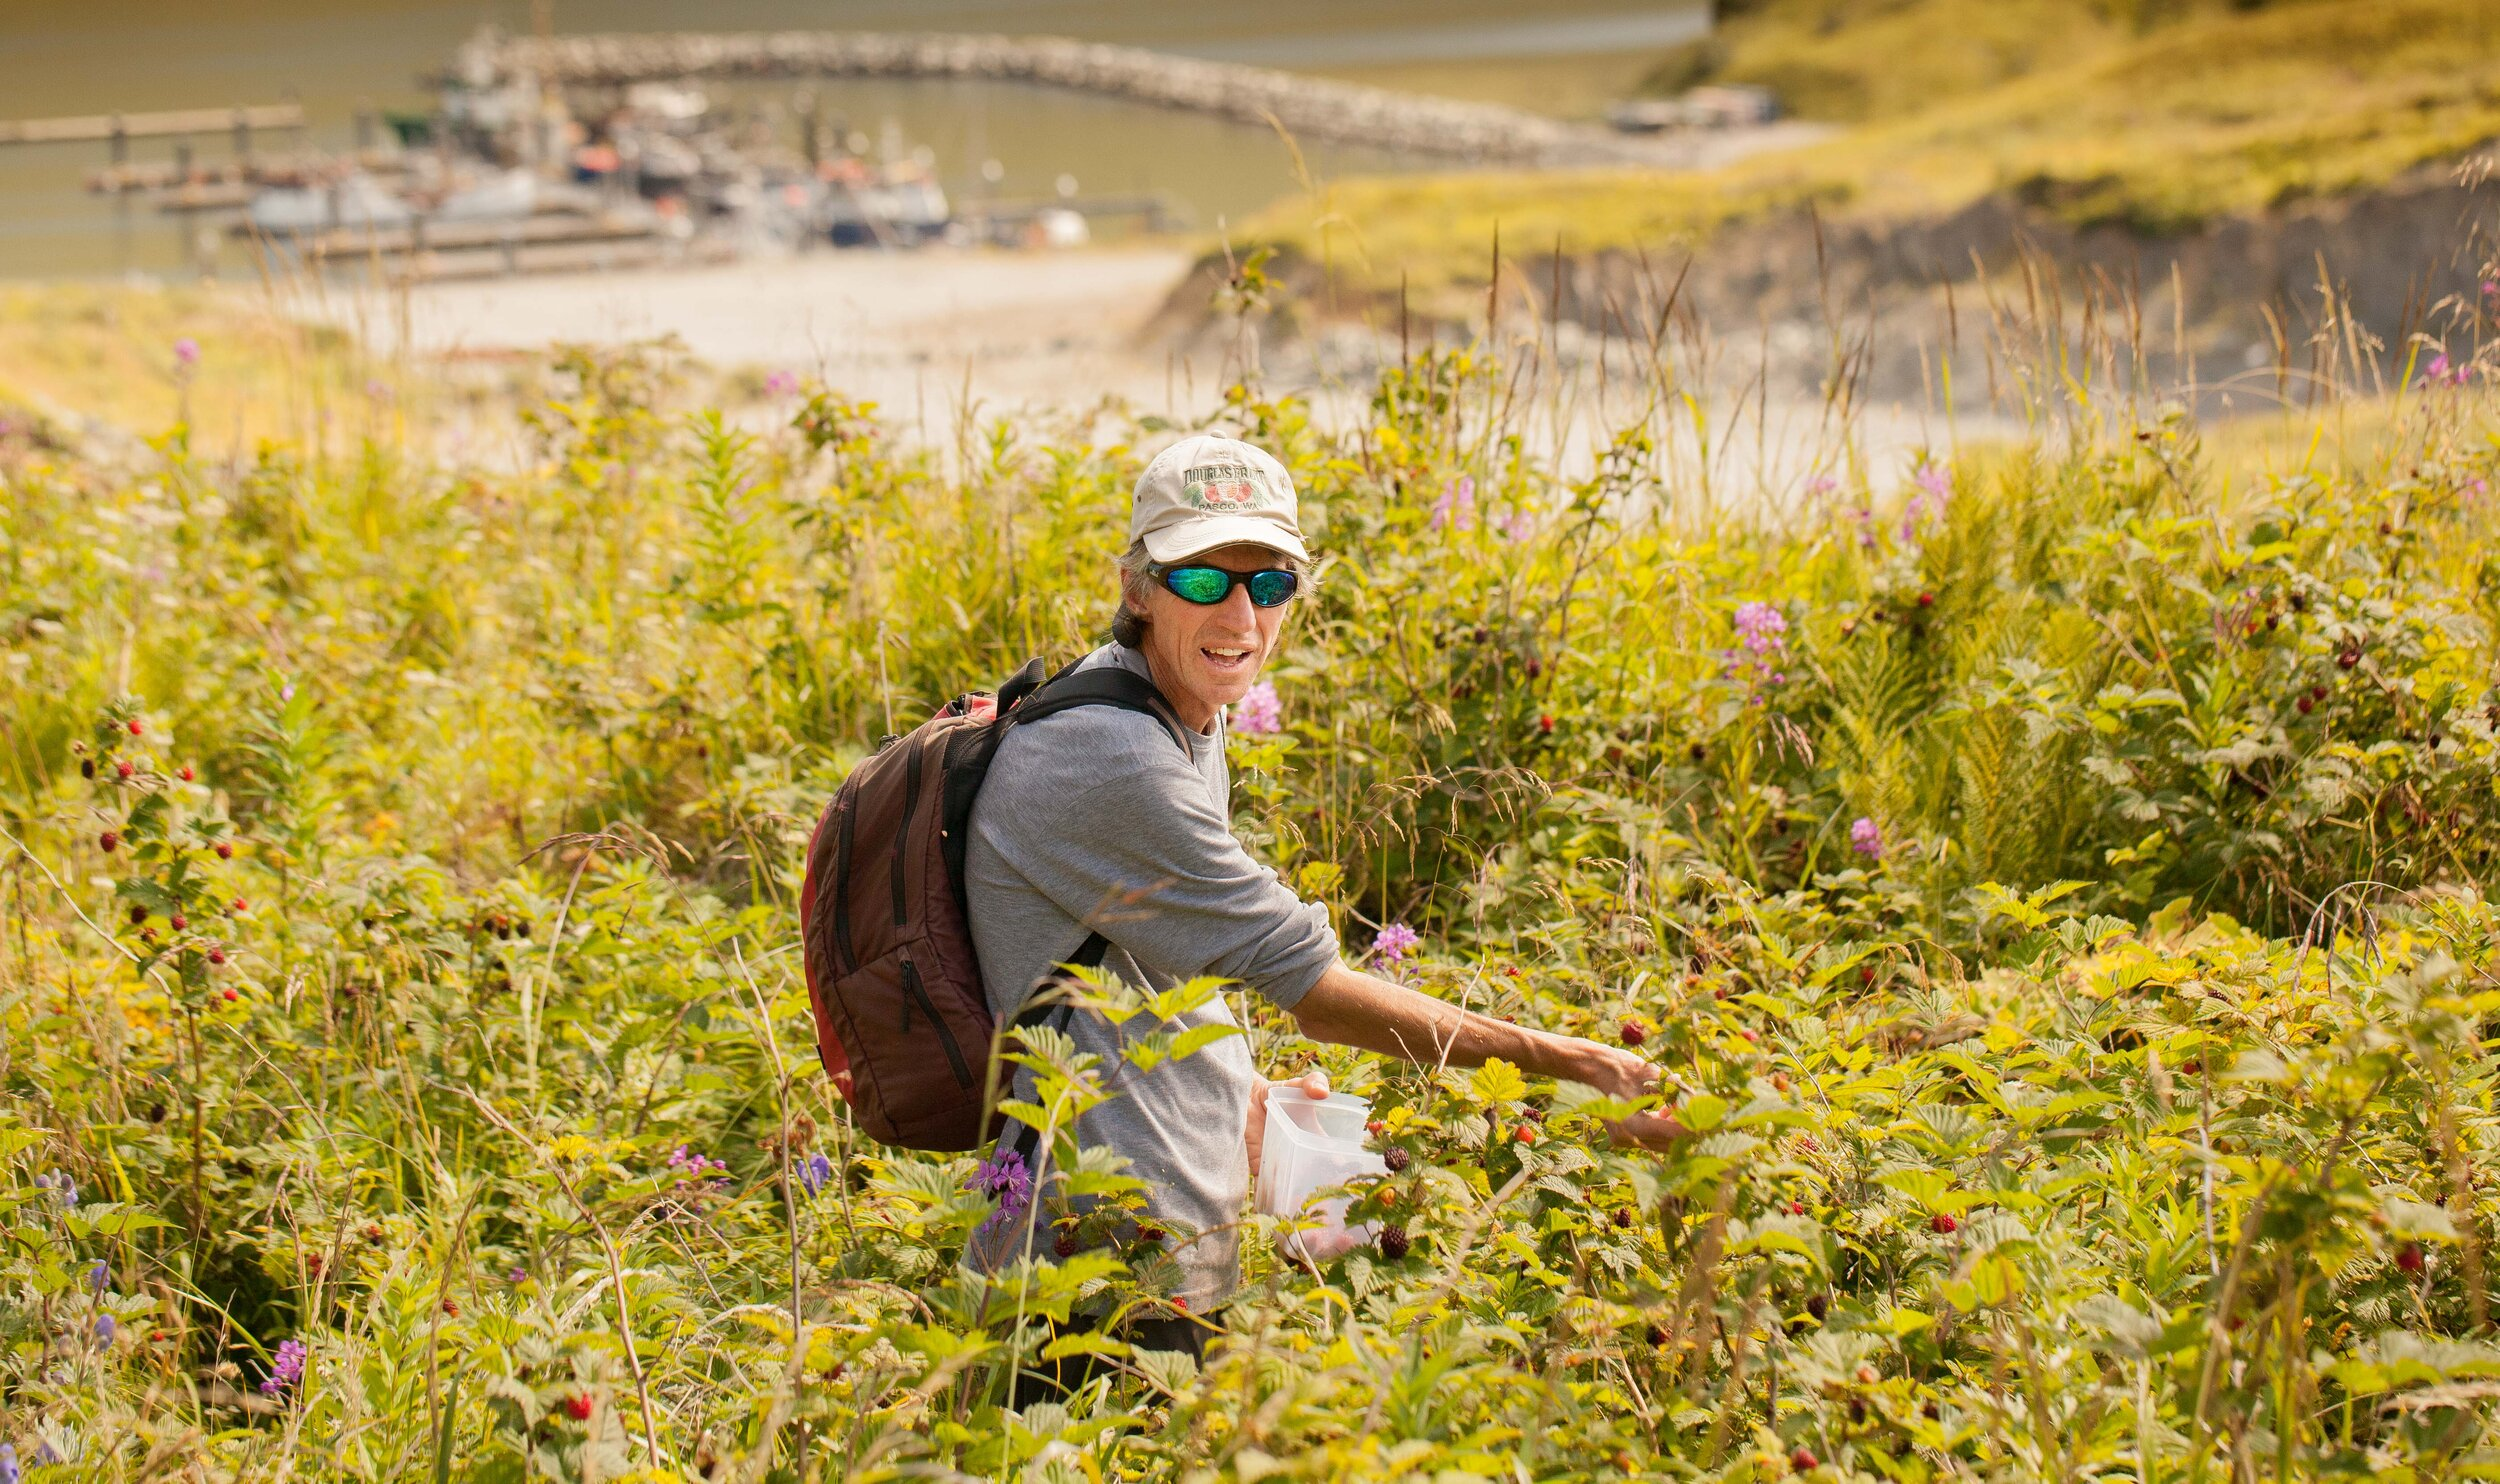 Douglas picking salmonberries. We caught the last few days of summer, adding fresh picked blueberries and salmon berries to our breakfasts.